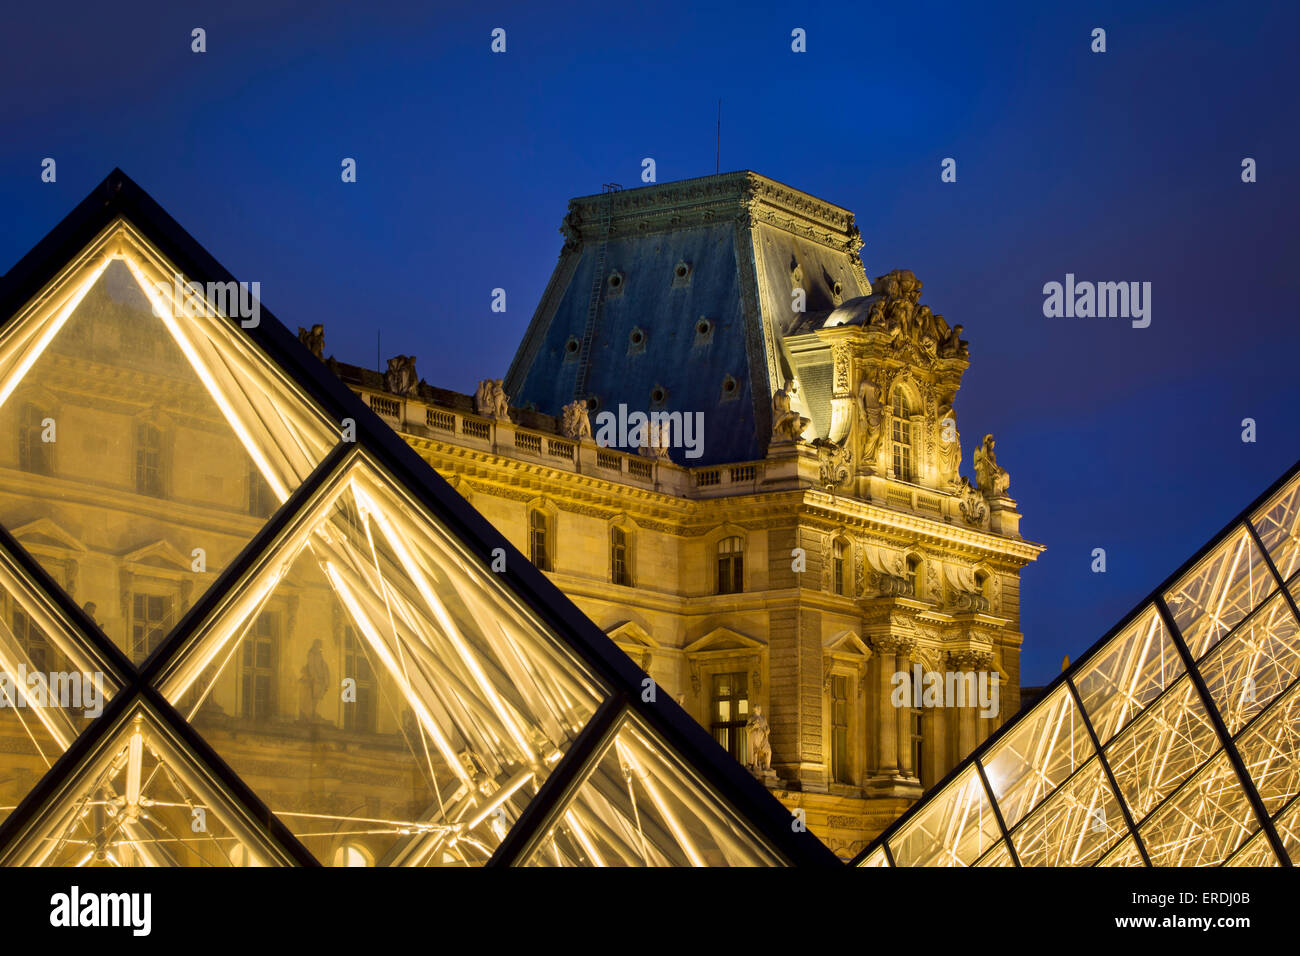 Evening in the courtyard of Musee du Louvre, Paris, France - Stock Image